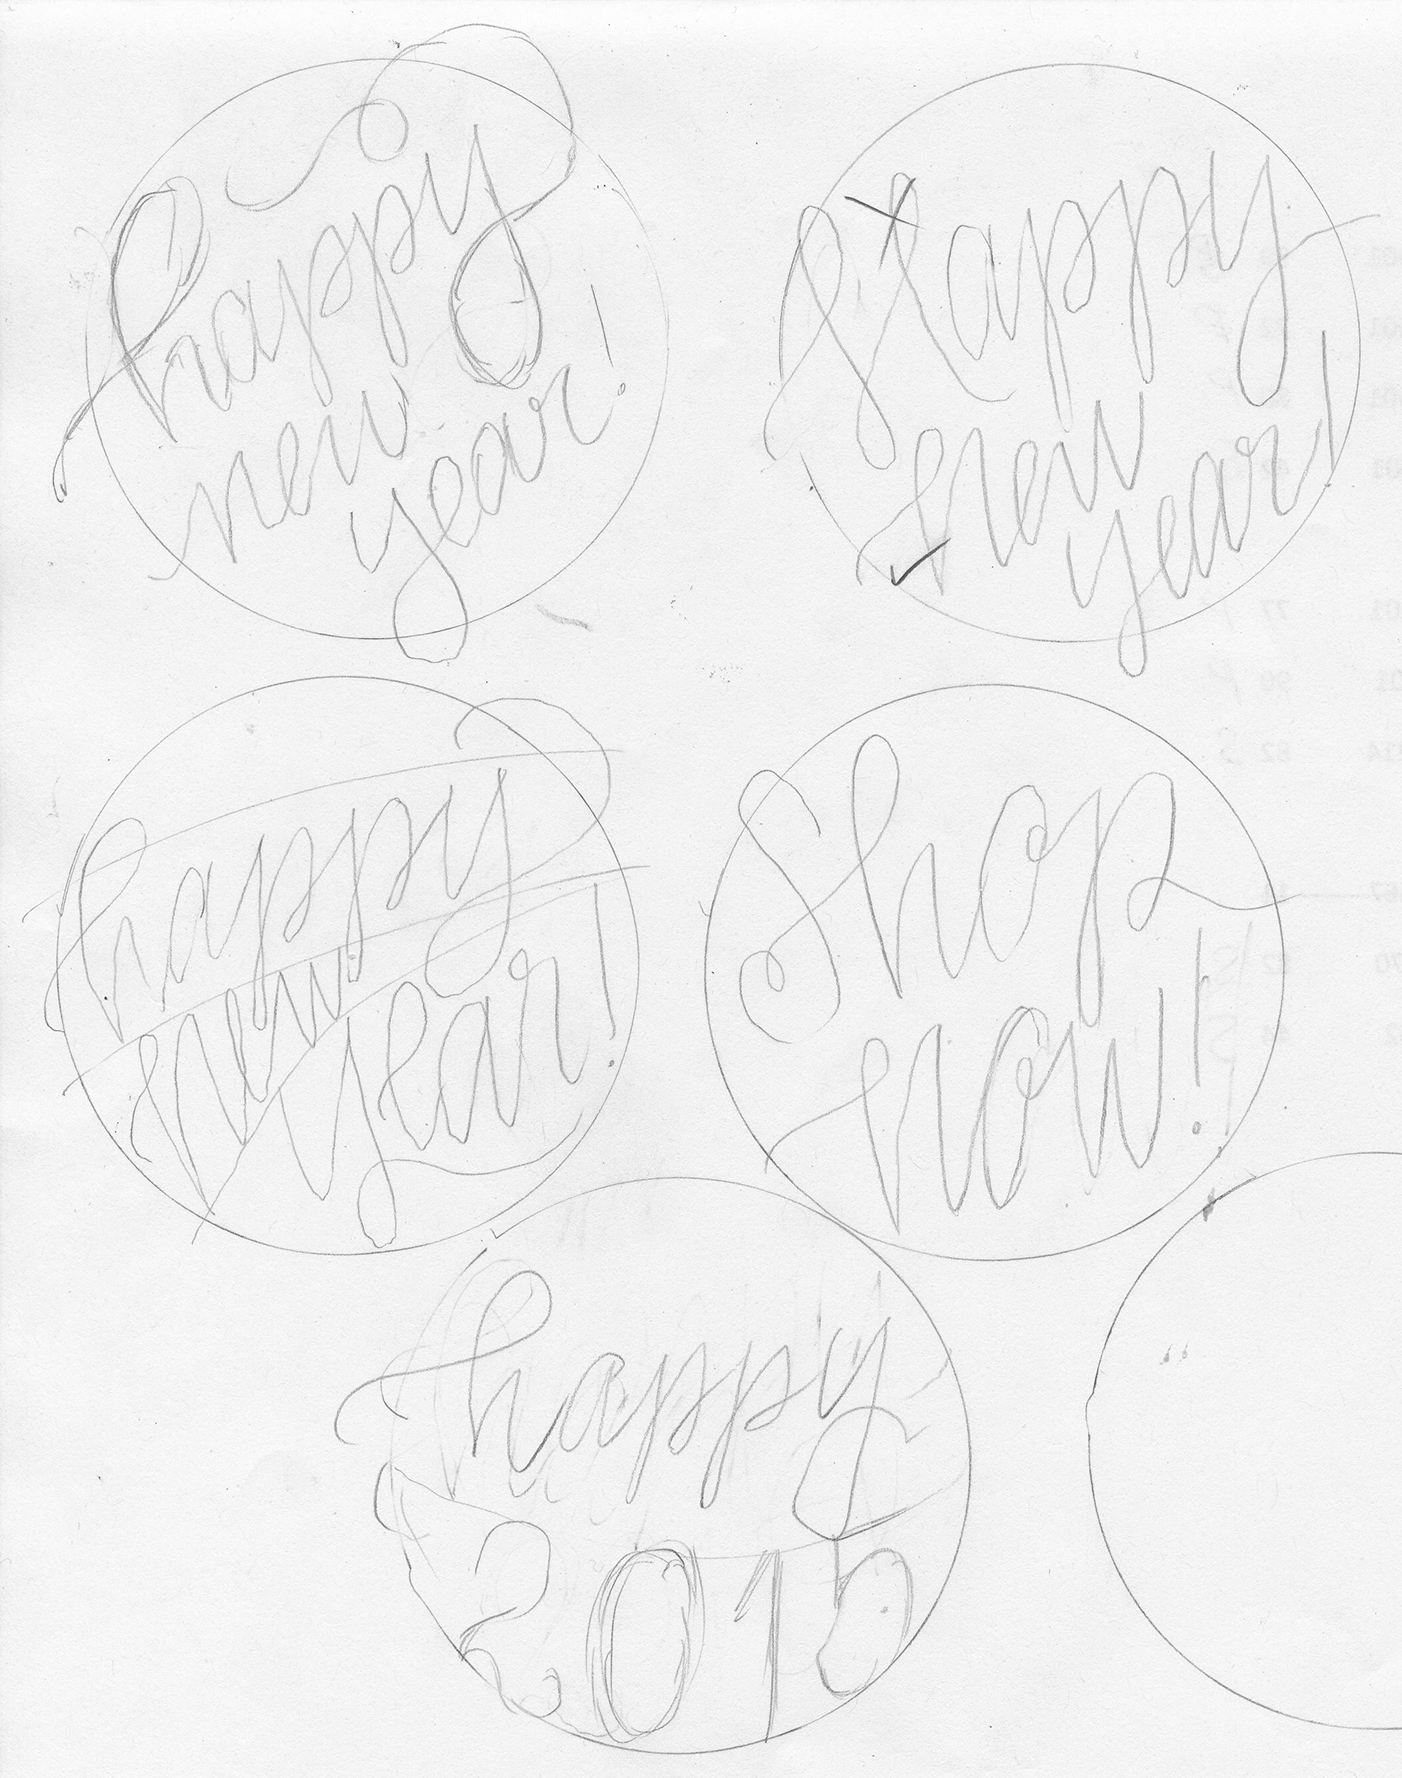 MC_Lettering_NewYear.png